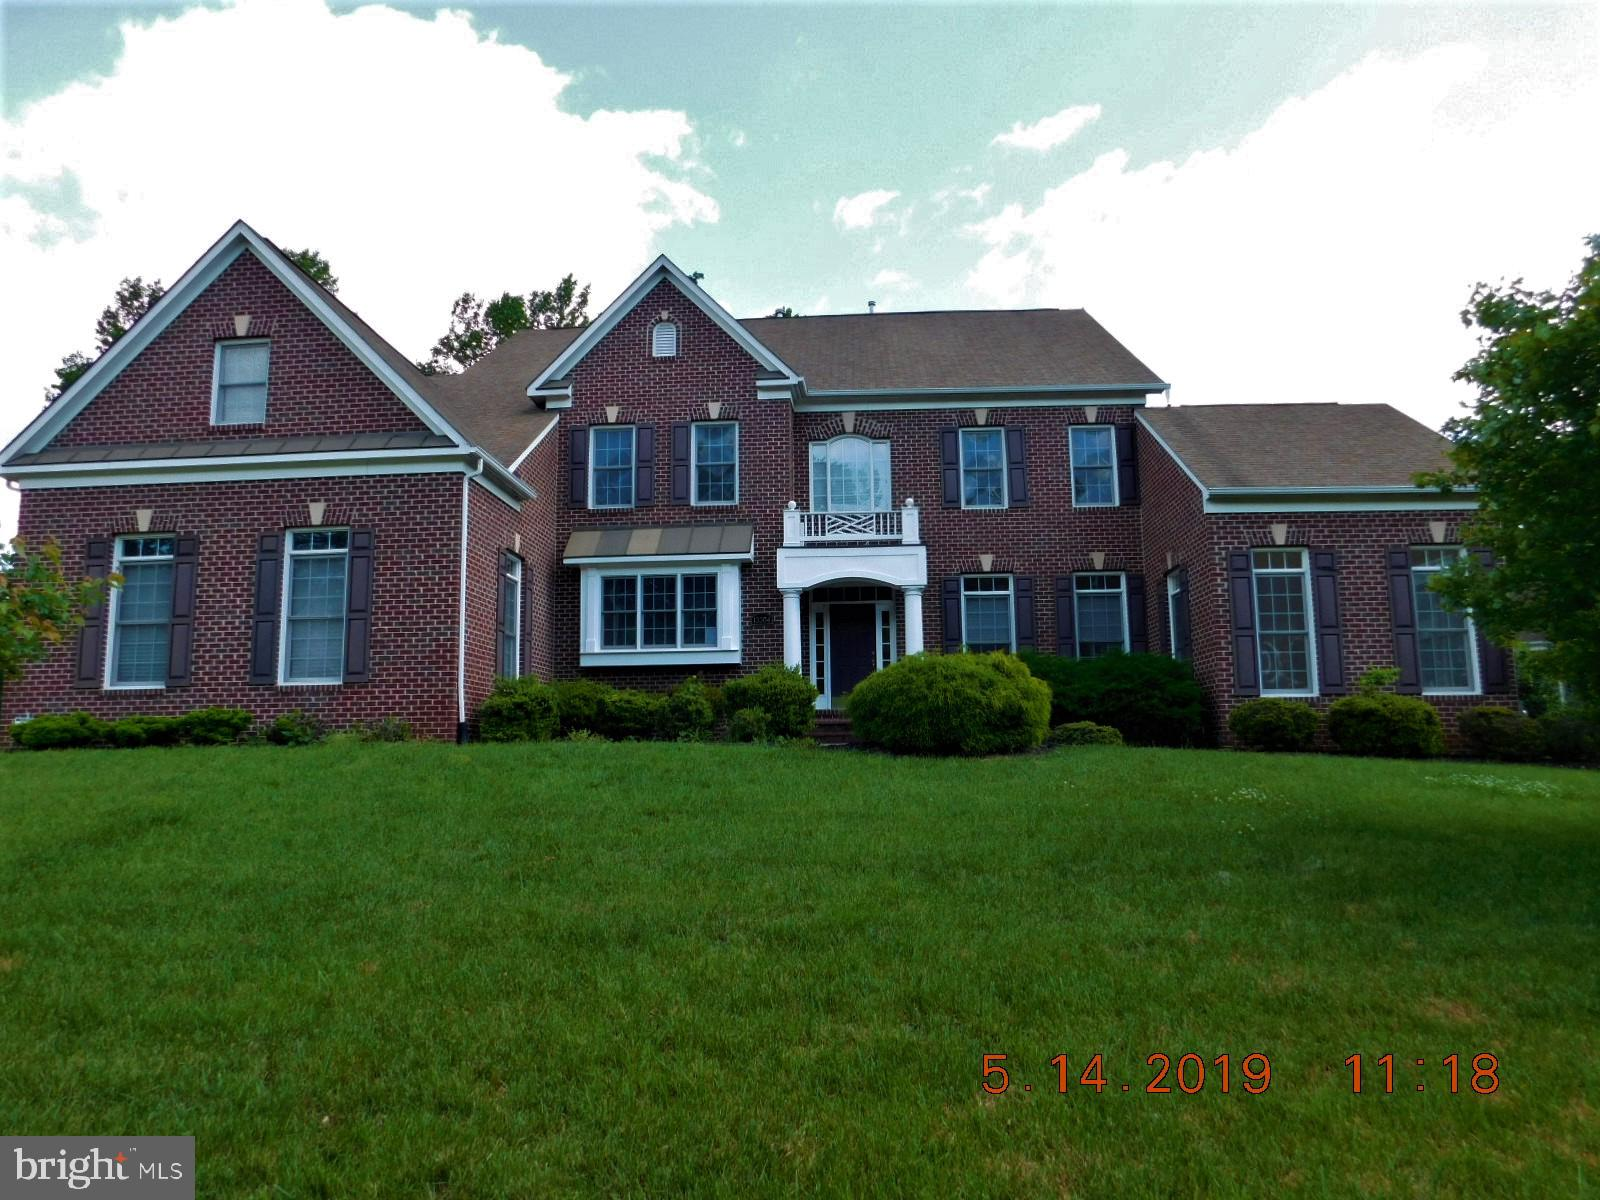 13304 BIG CEDAR LANE, BOWIE, MD 20720